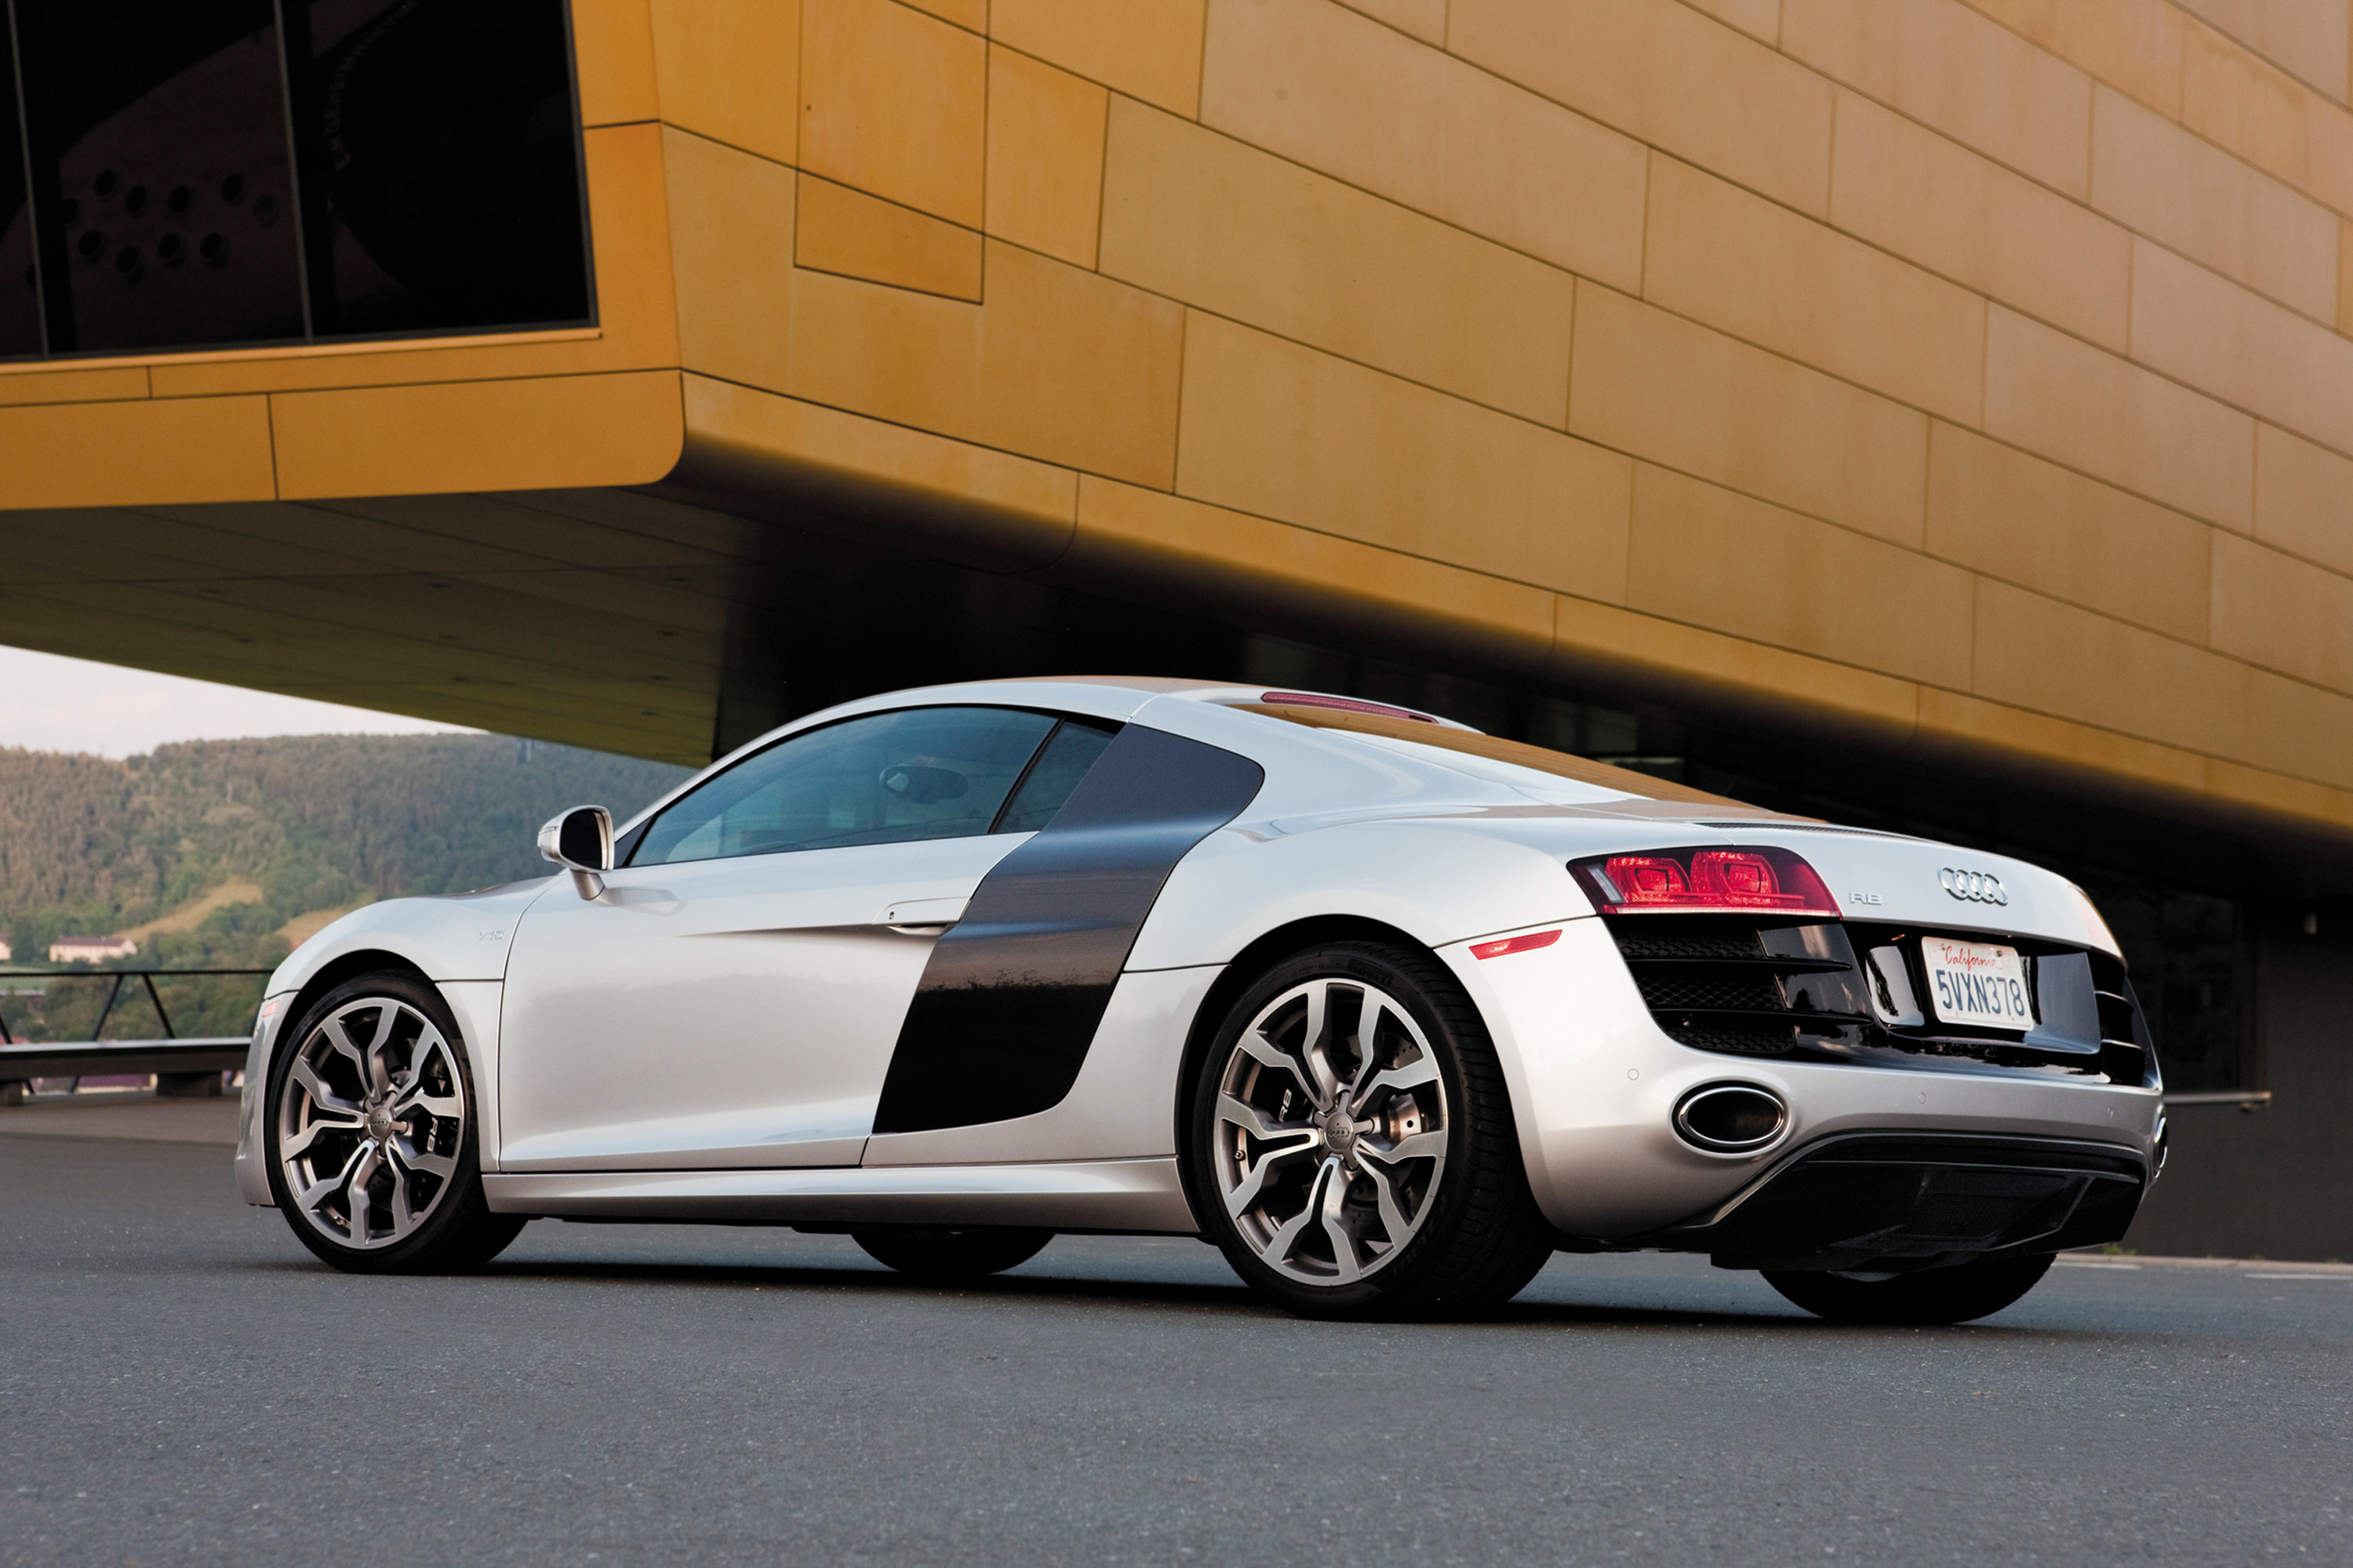 2010 Audi R8 5 2 Fsi Quattro Pricing Announced